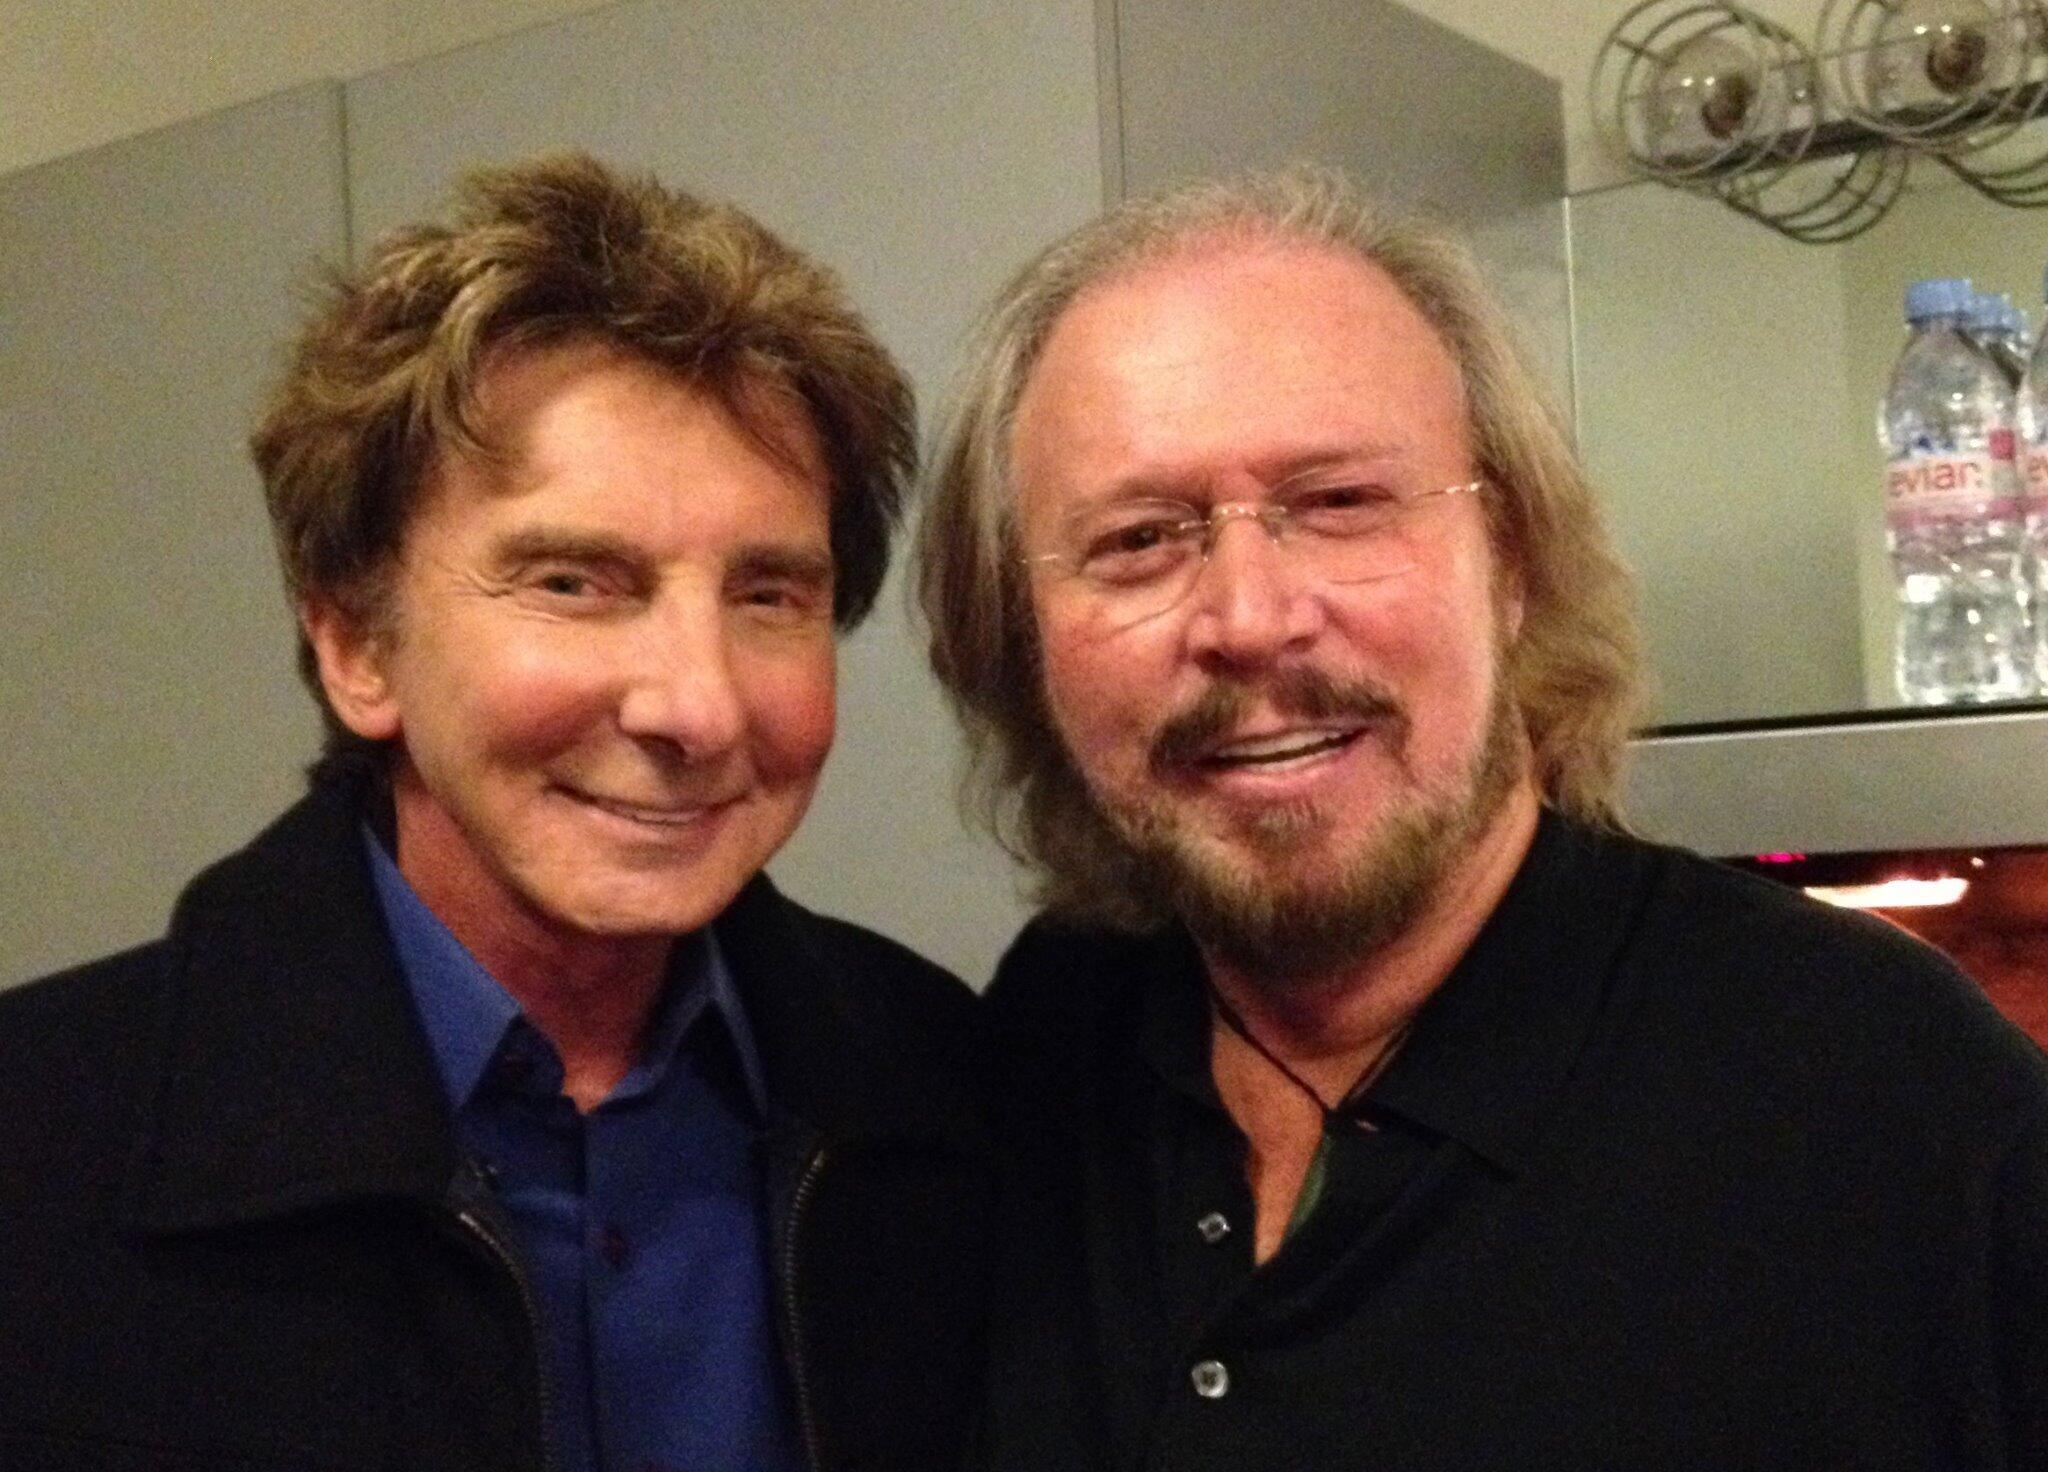 RT @barrymanilow: Barry Gibb's show at the Hollywood Bowl last night was fantastic!  What a fantastic songwriter! http://t.co/RsT2xej8Ul